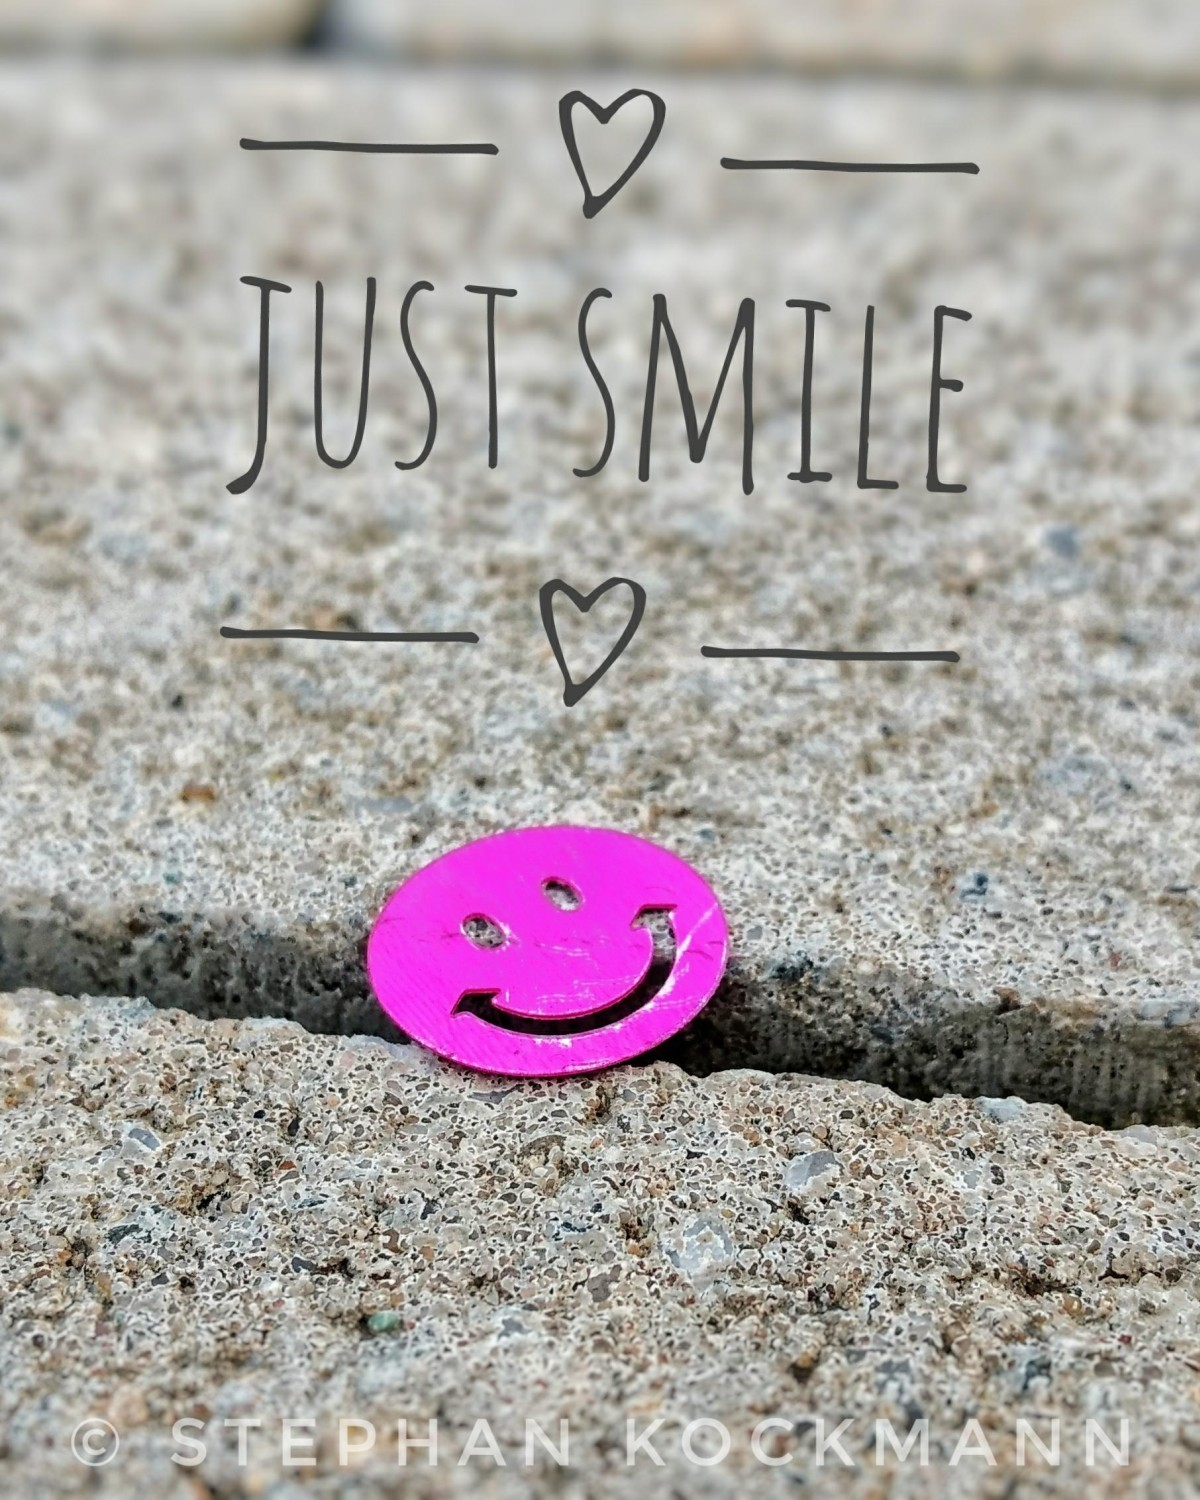 just smile - Alltags-Fundstück